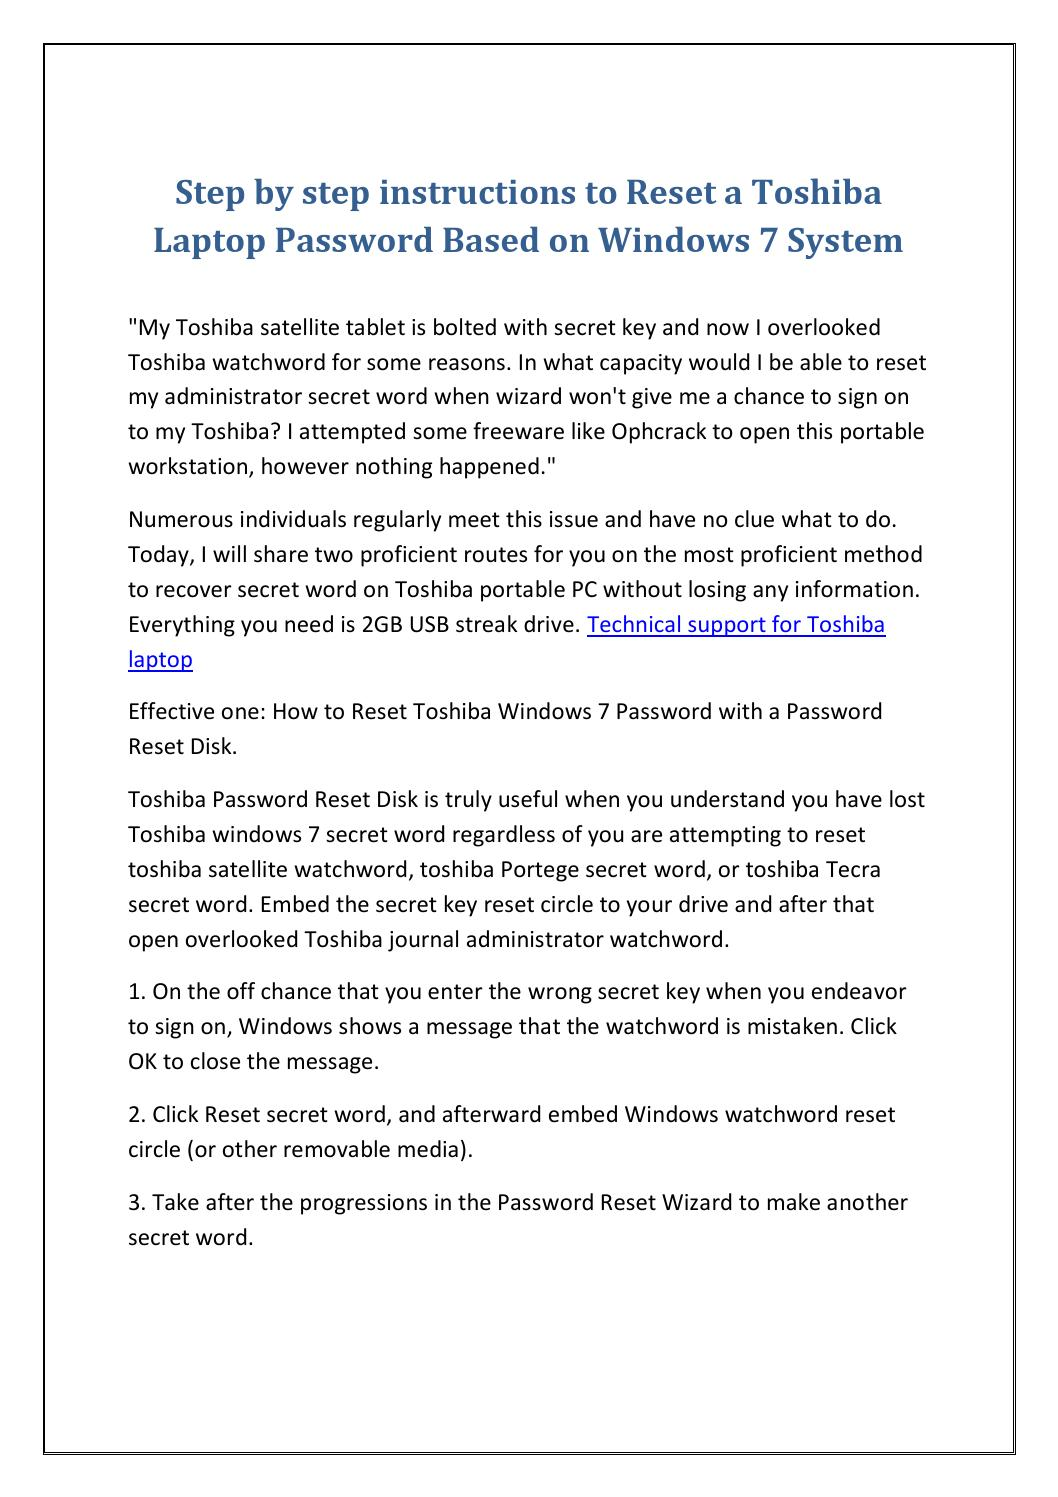 how to reset a password on a toshiba laptop windows 7